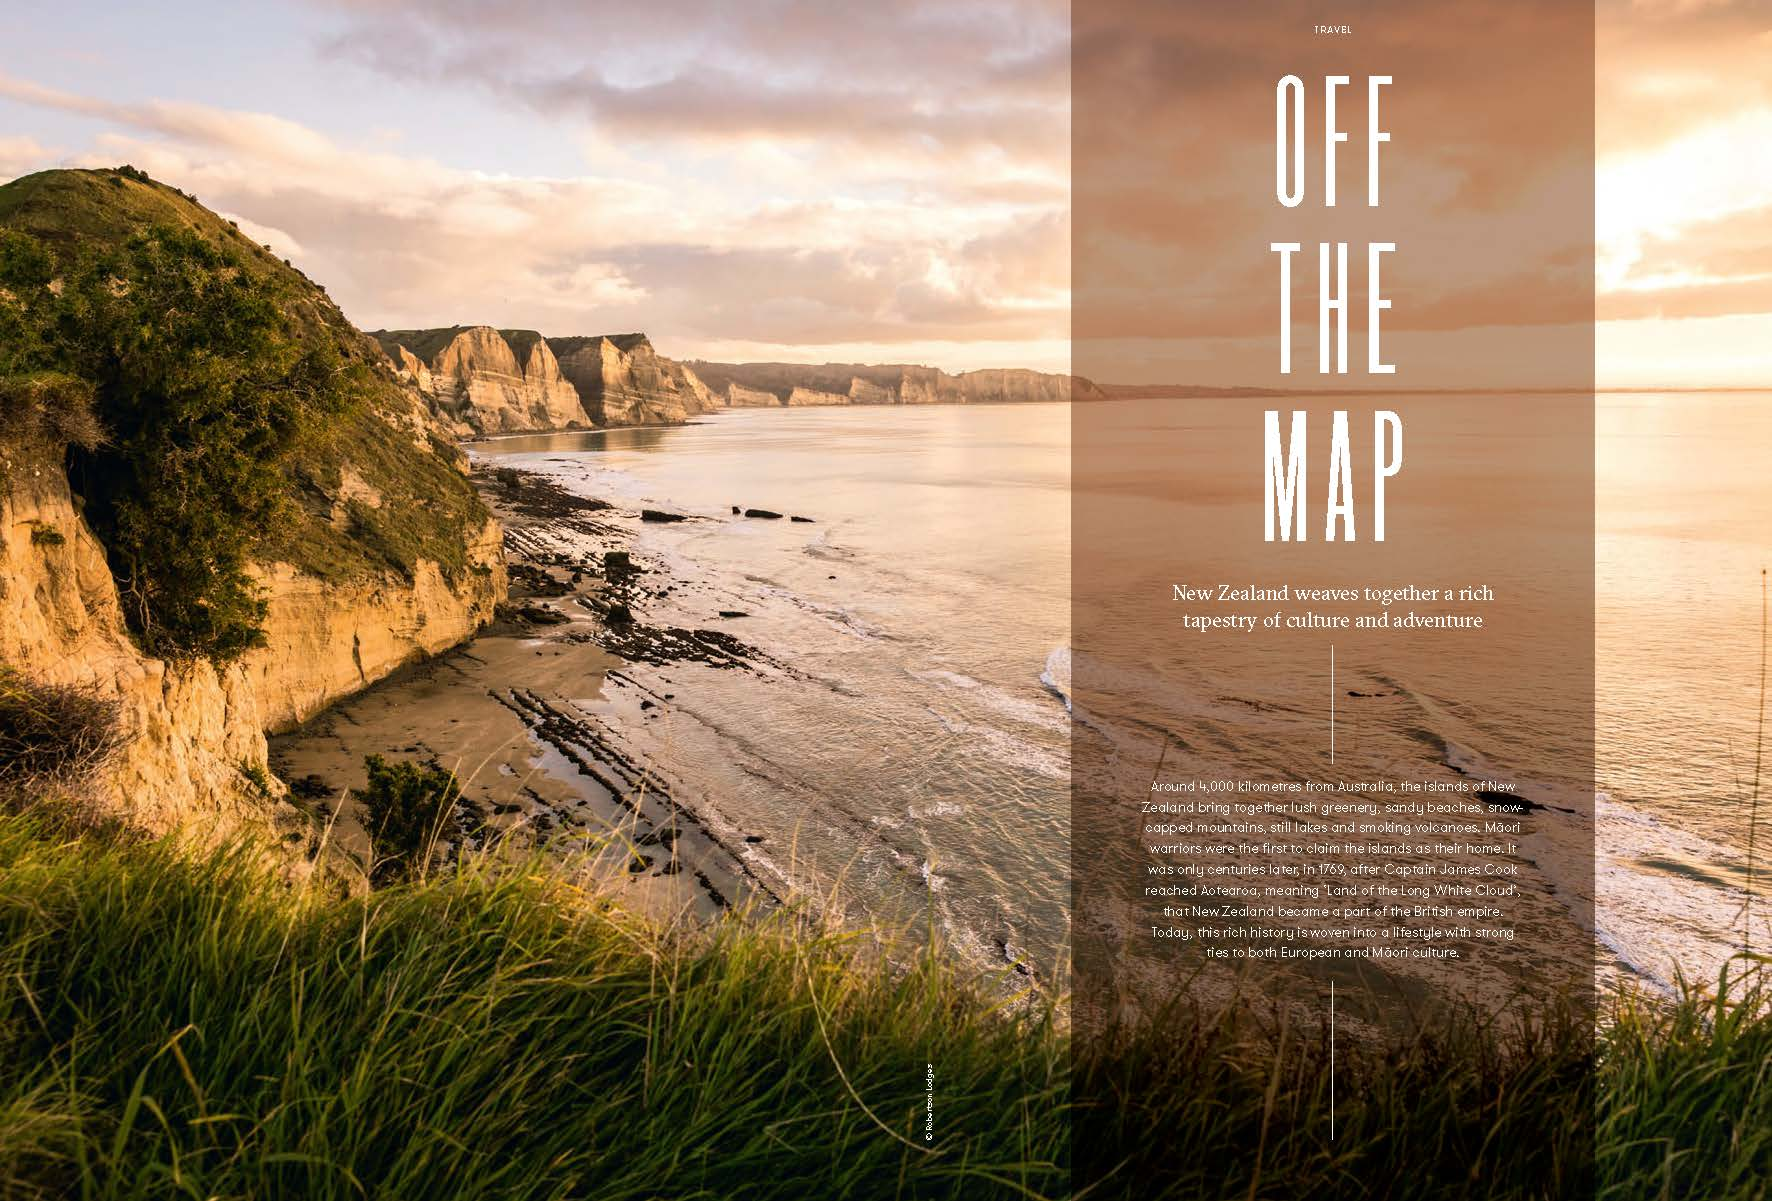 David & Radcliffe – Words – Off the map